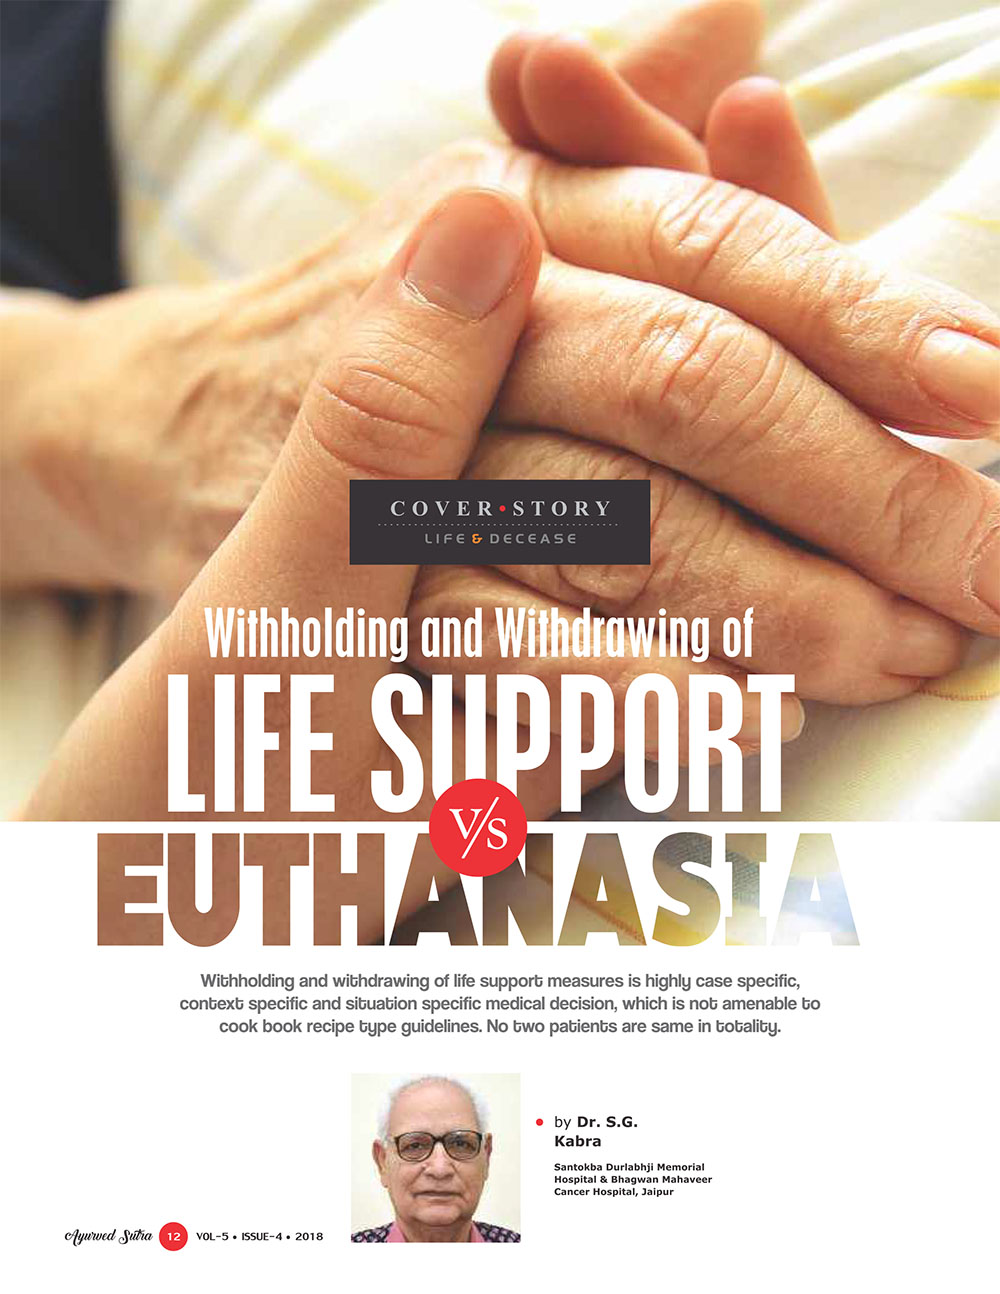 Ayurvedsutra Vol 05 issue 04 14 - Withholding and Withdrawing of Life Support V/s Euthanasia